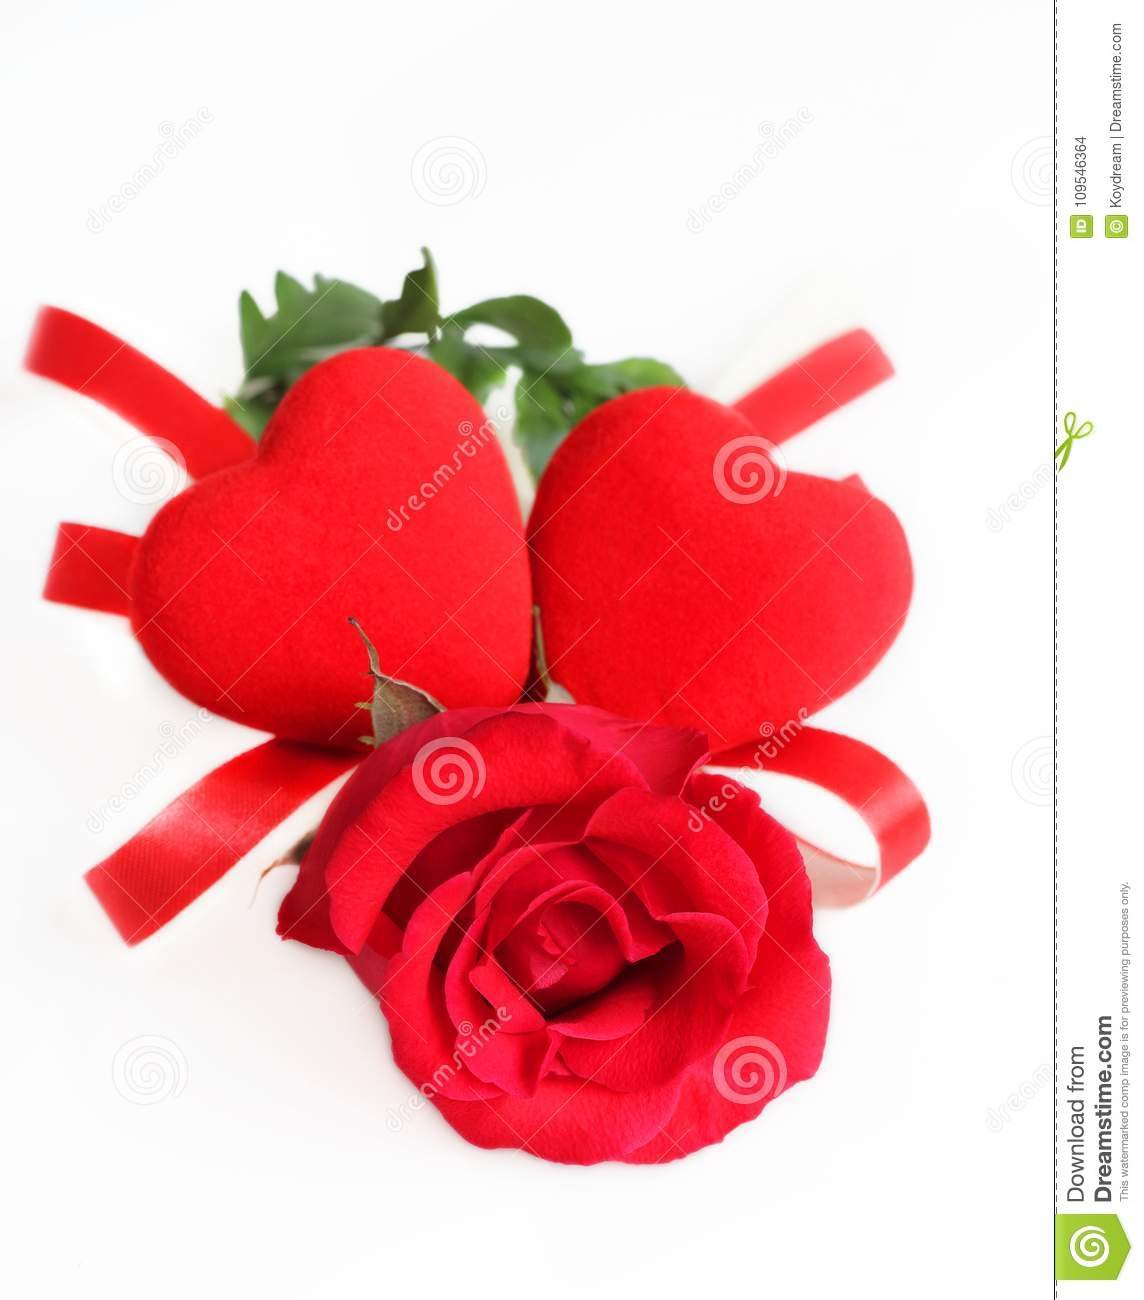 Rose Red Color Flower On White Background. Stock Photo - Image of ...